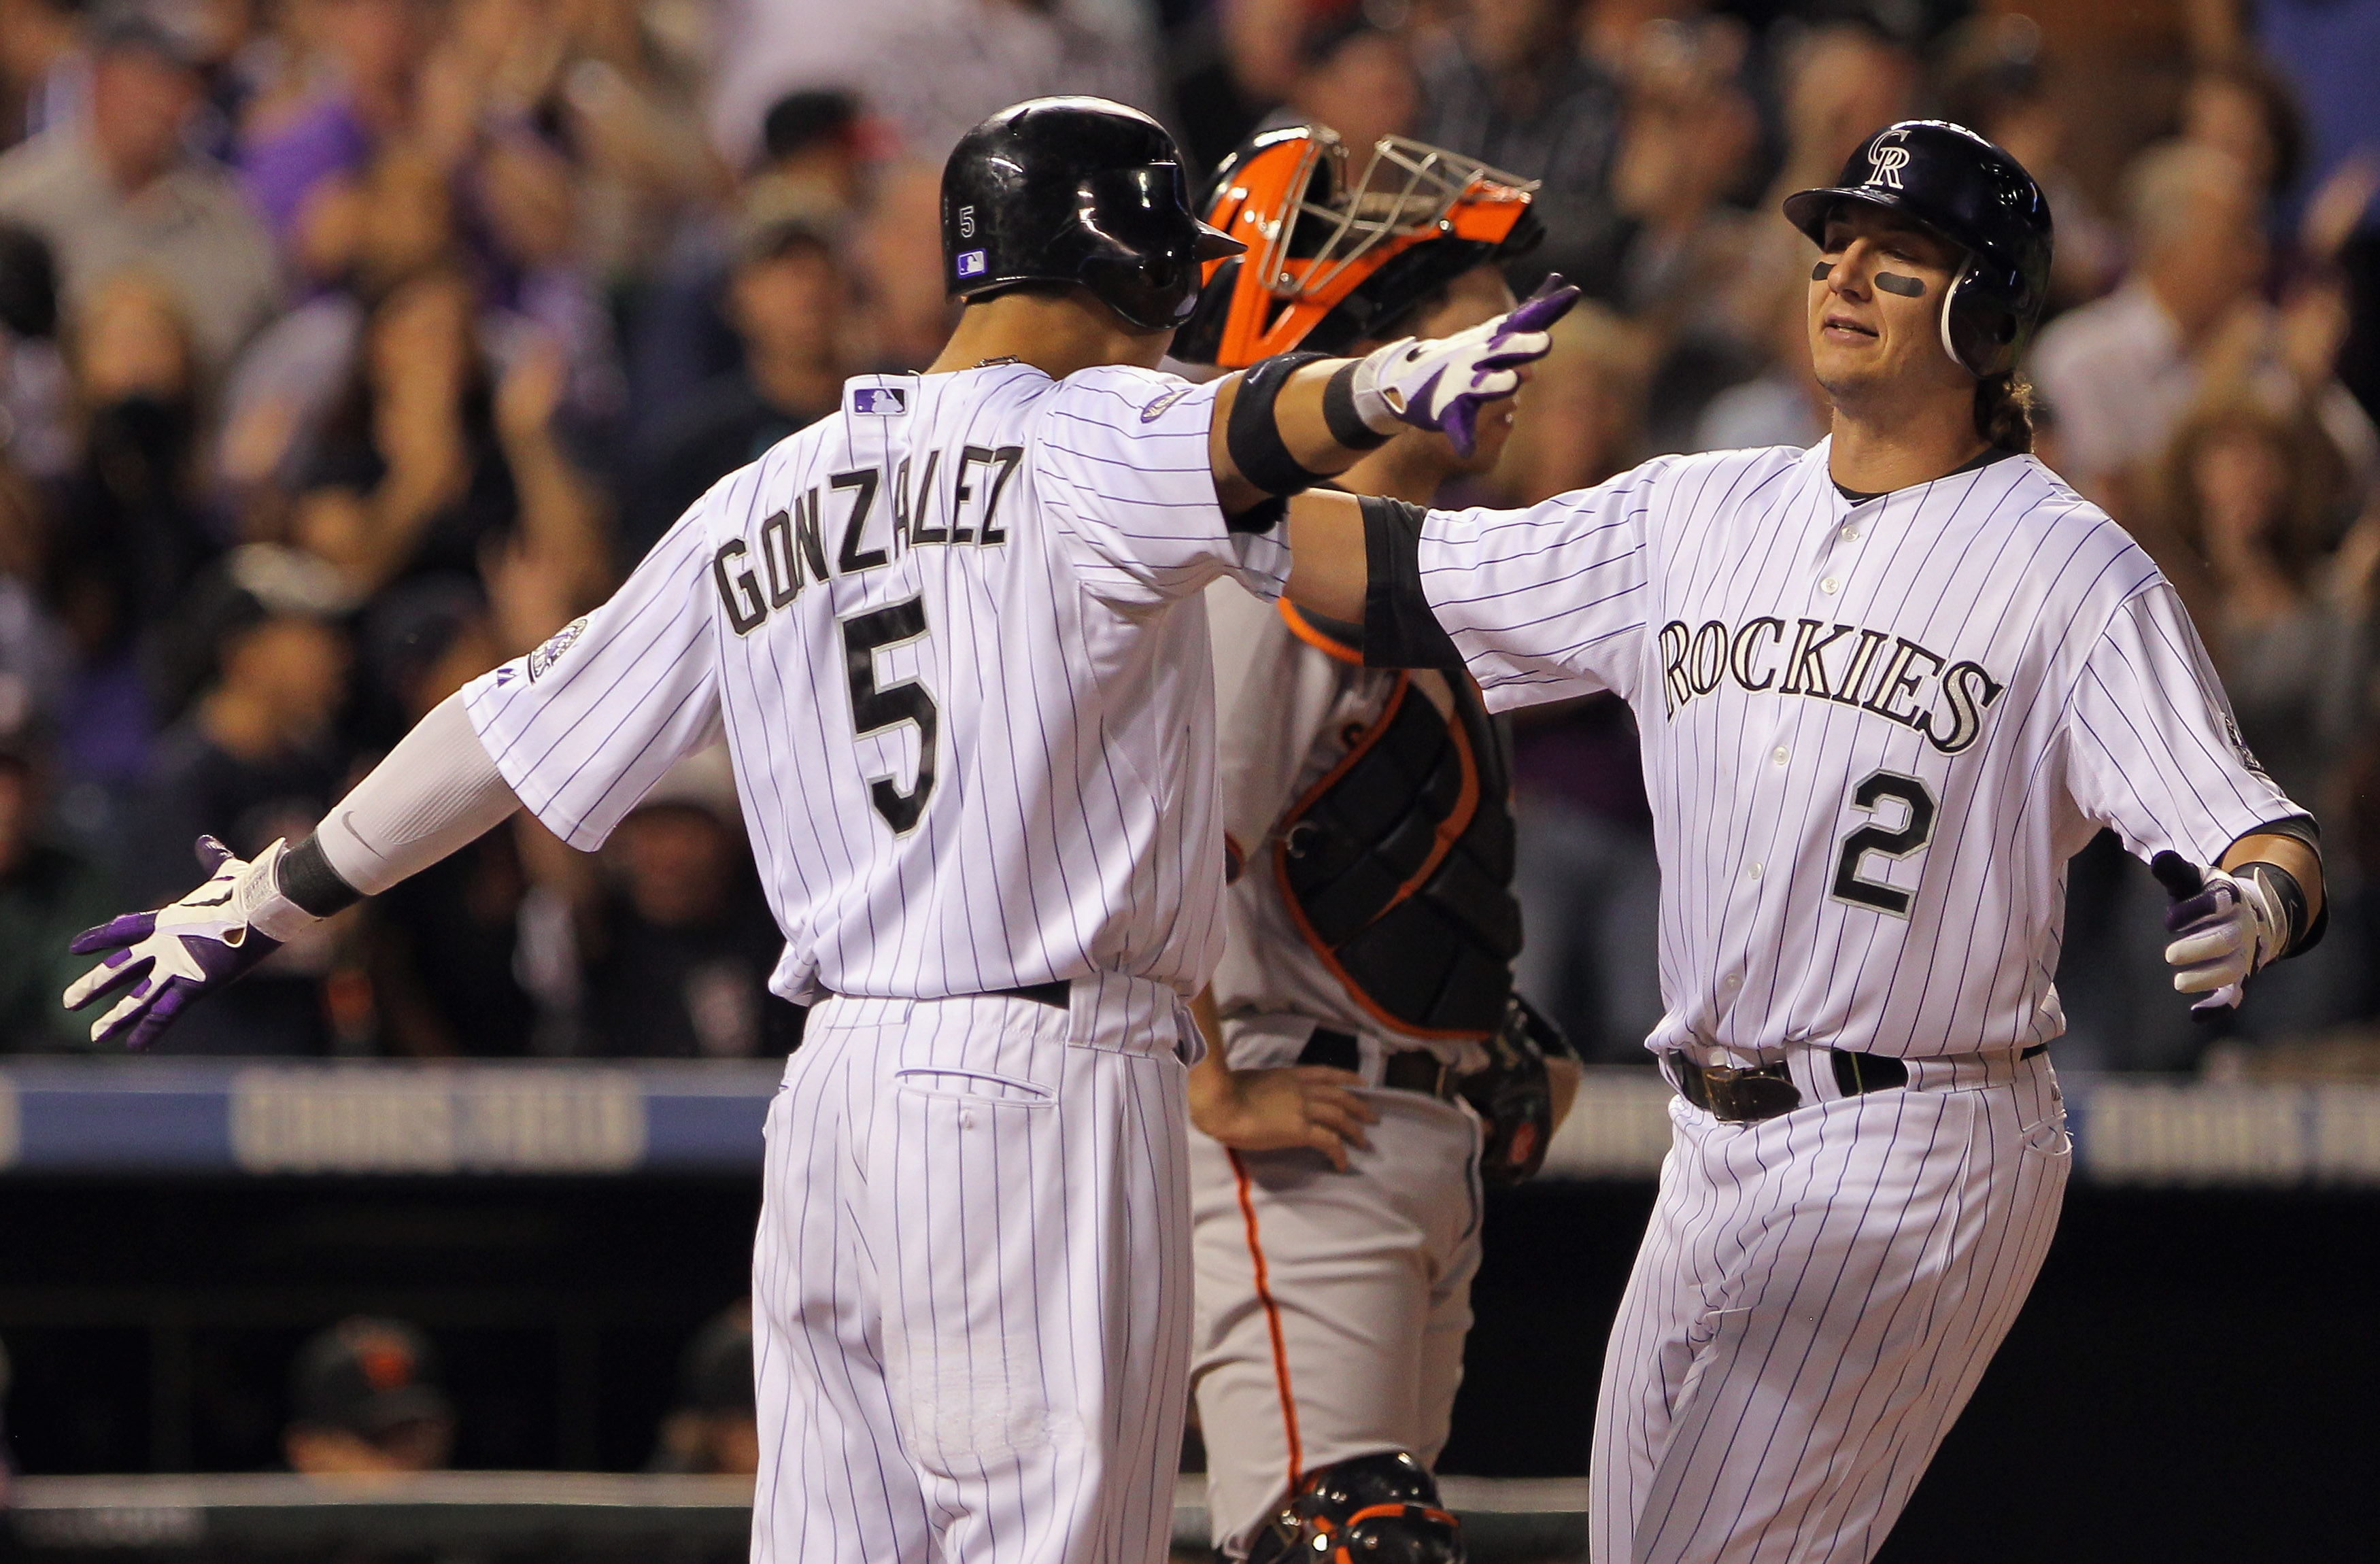 DENVER - SEPTEMBER 25:  Troy Tulowitzki #2 of the Colorado Rockies is welcomed home by Carlos Gonzalez #5 who scored on his two run homerun to give the Rockies a 5-4 lead over the San Francisco Giants in the fifth inning at Coors Field on September 25, 20